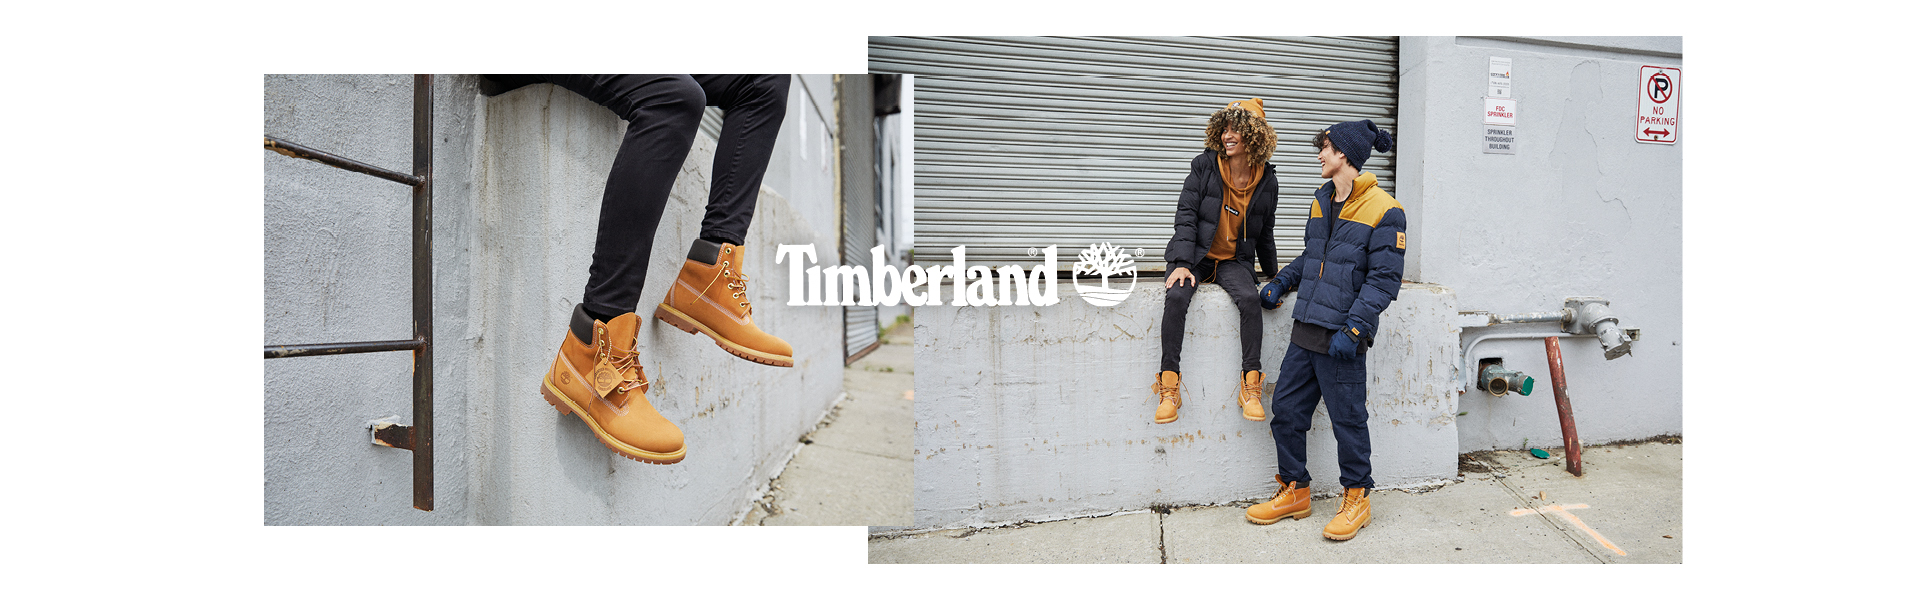 Model wears Timberland Boots